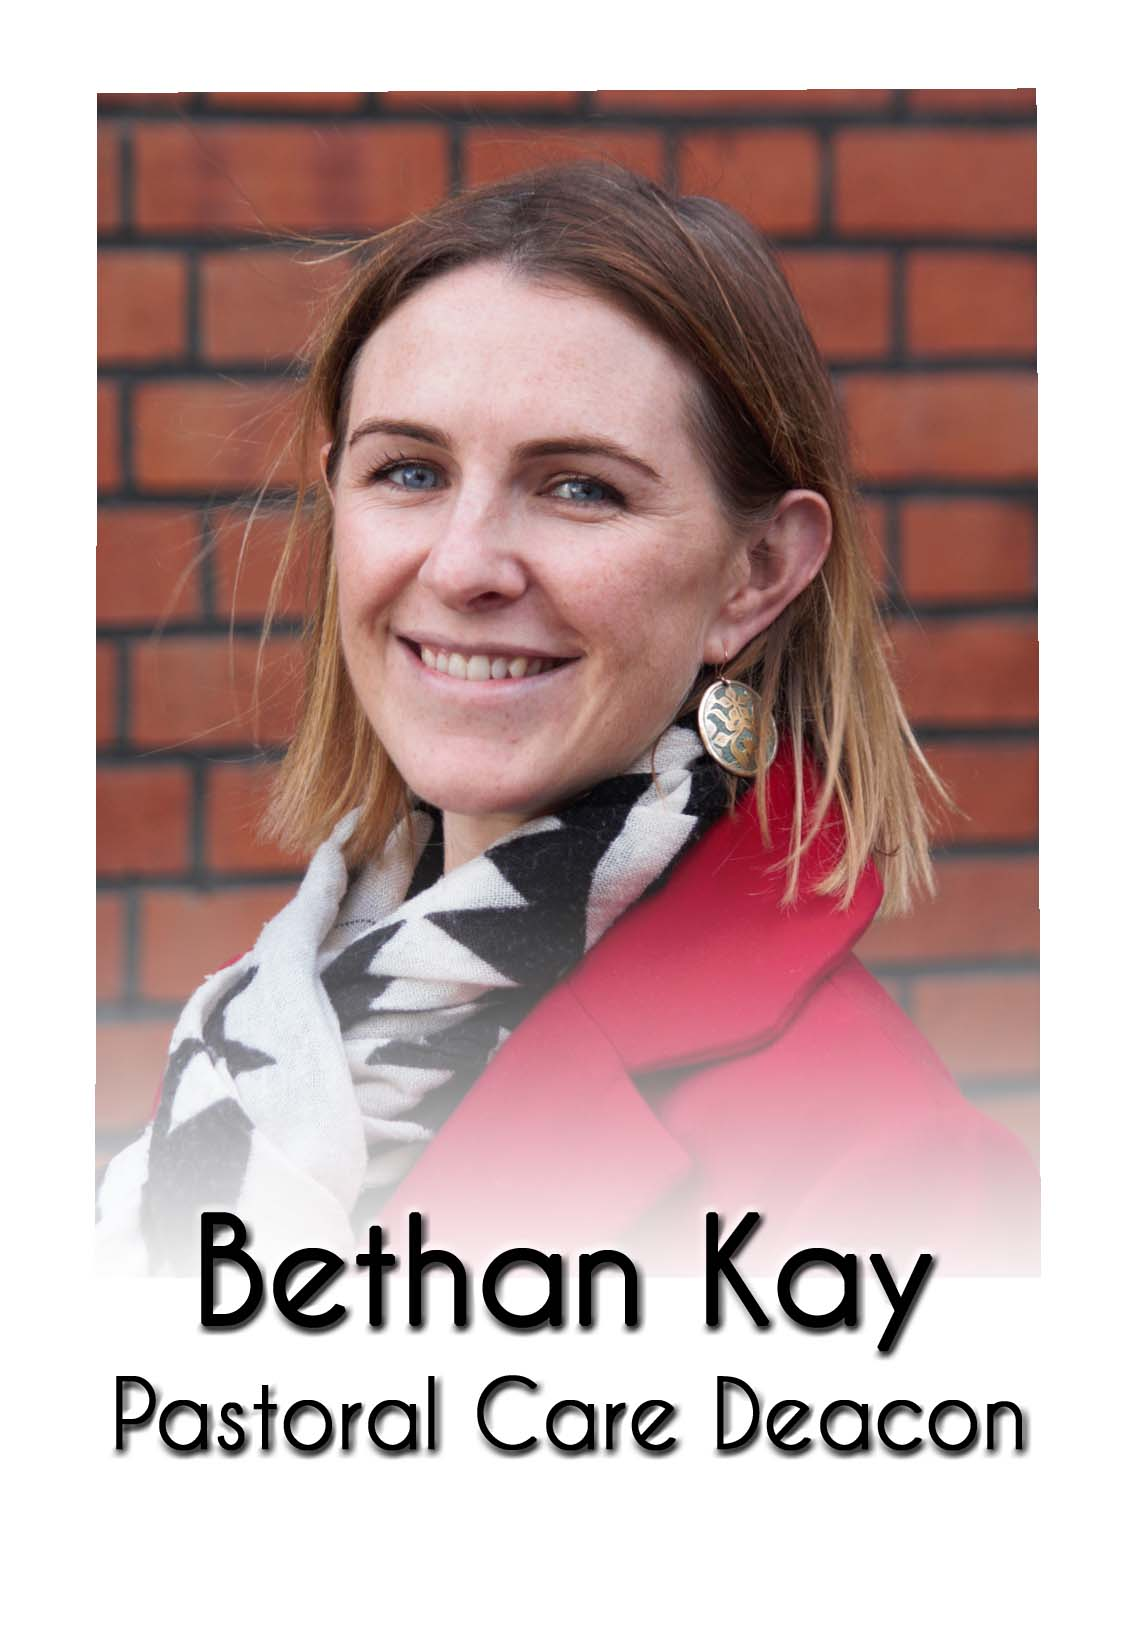 Bethan Kay labelled